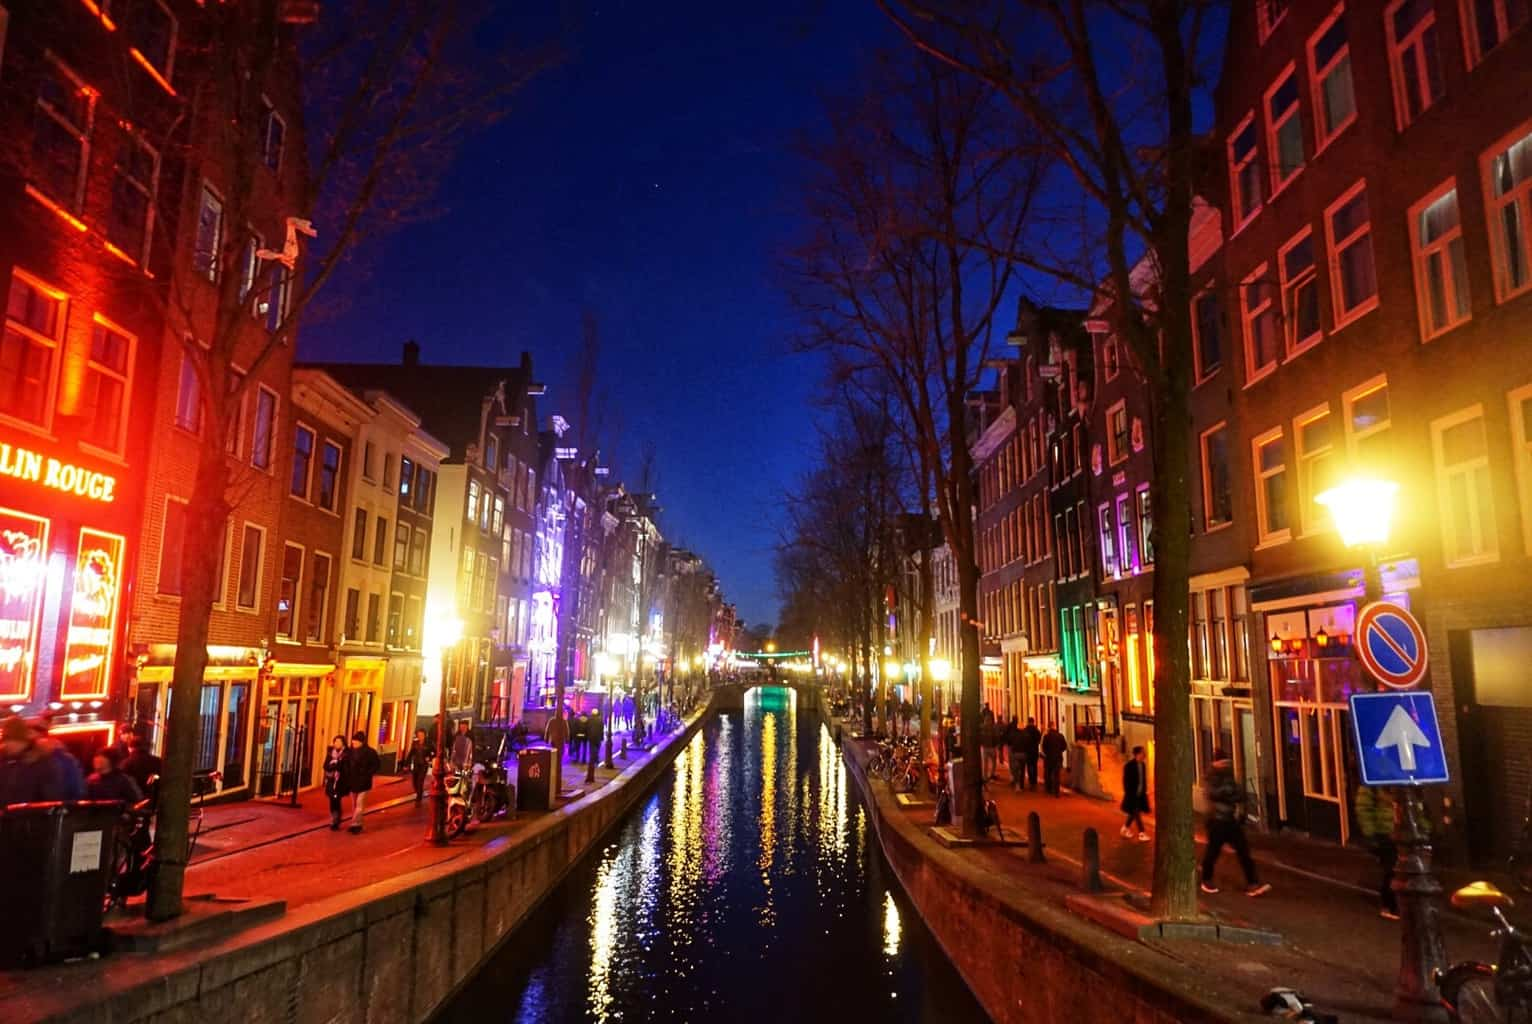 A view of the canals along Amsterdam's famous red light district.